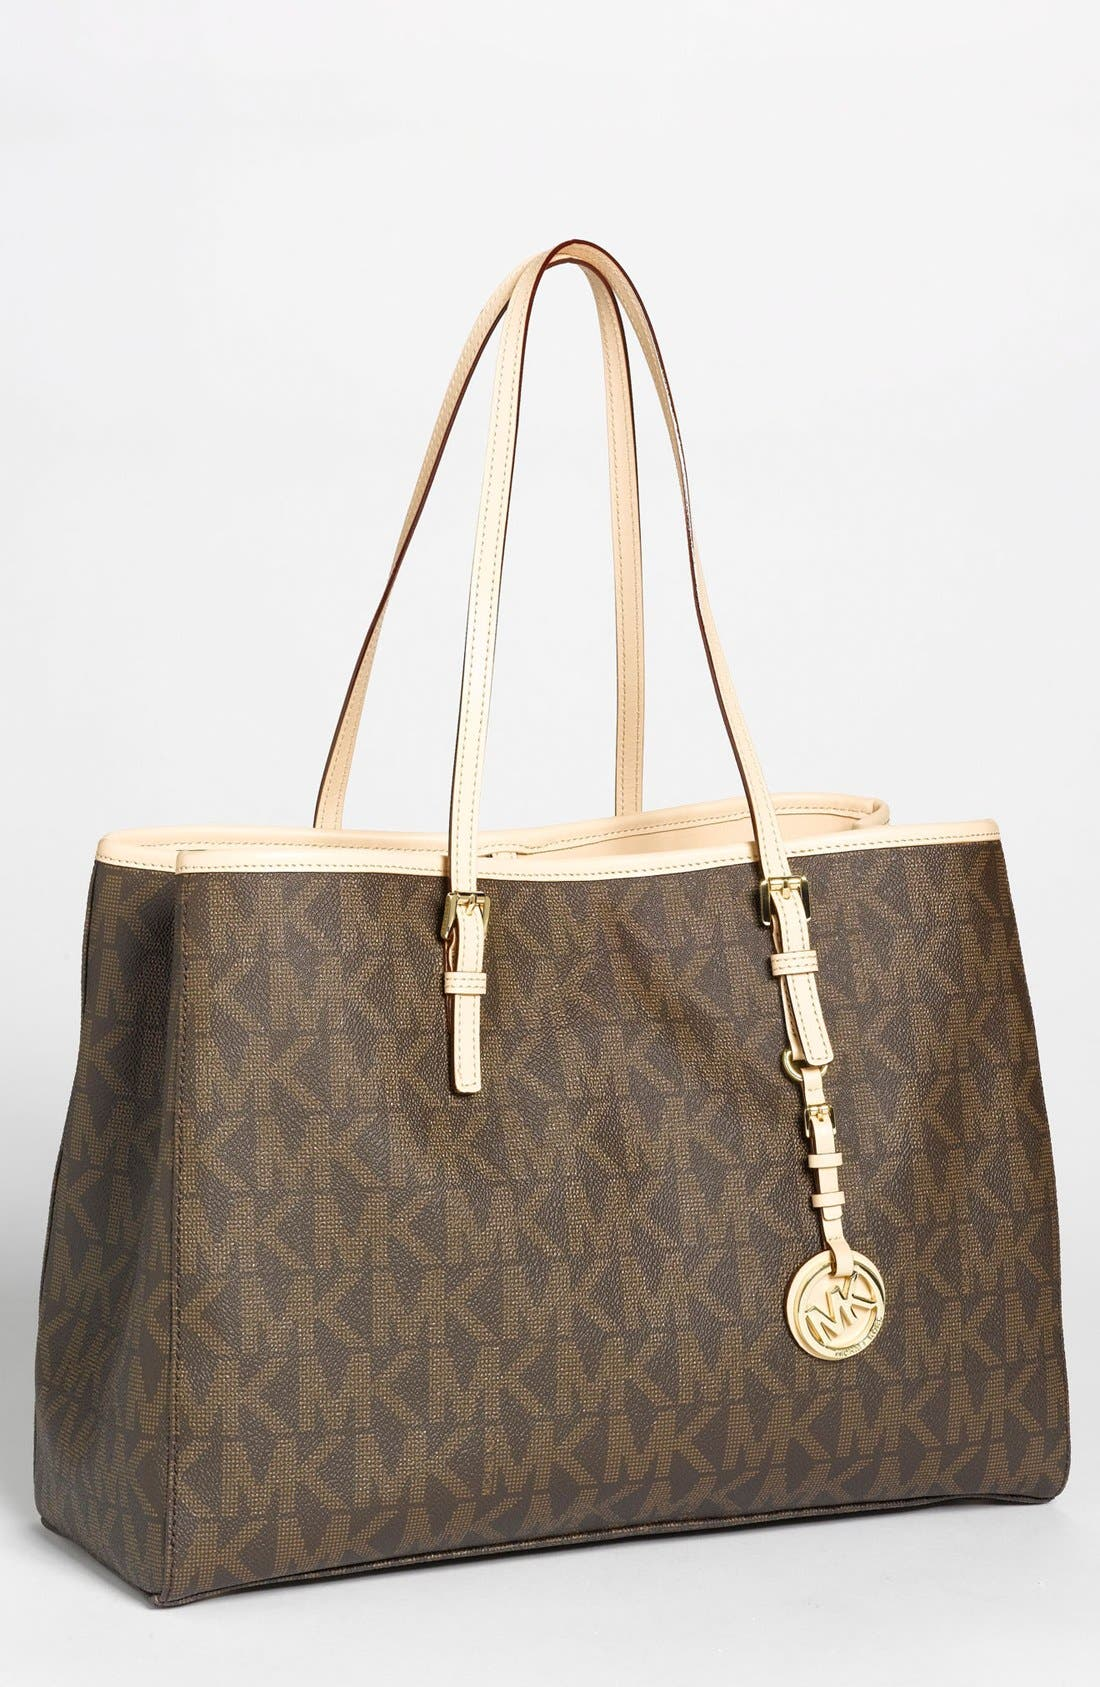 Main Image - MICHAEL Michael Kors 'East/West - Large' Tote